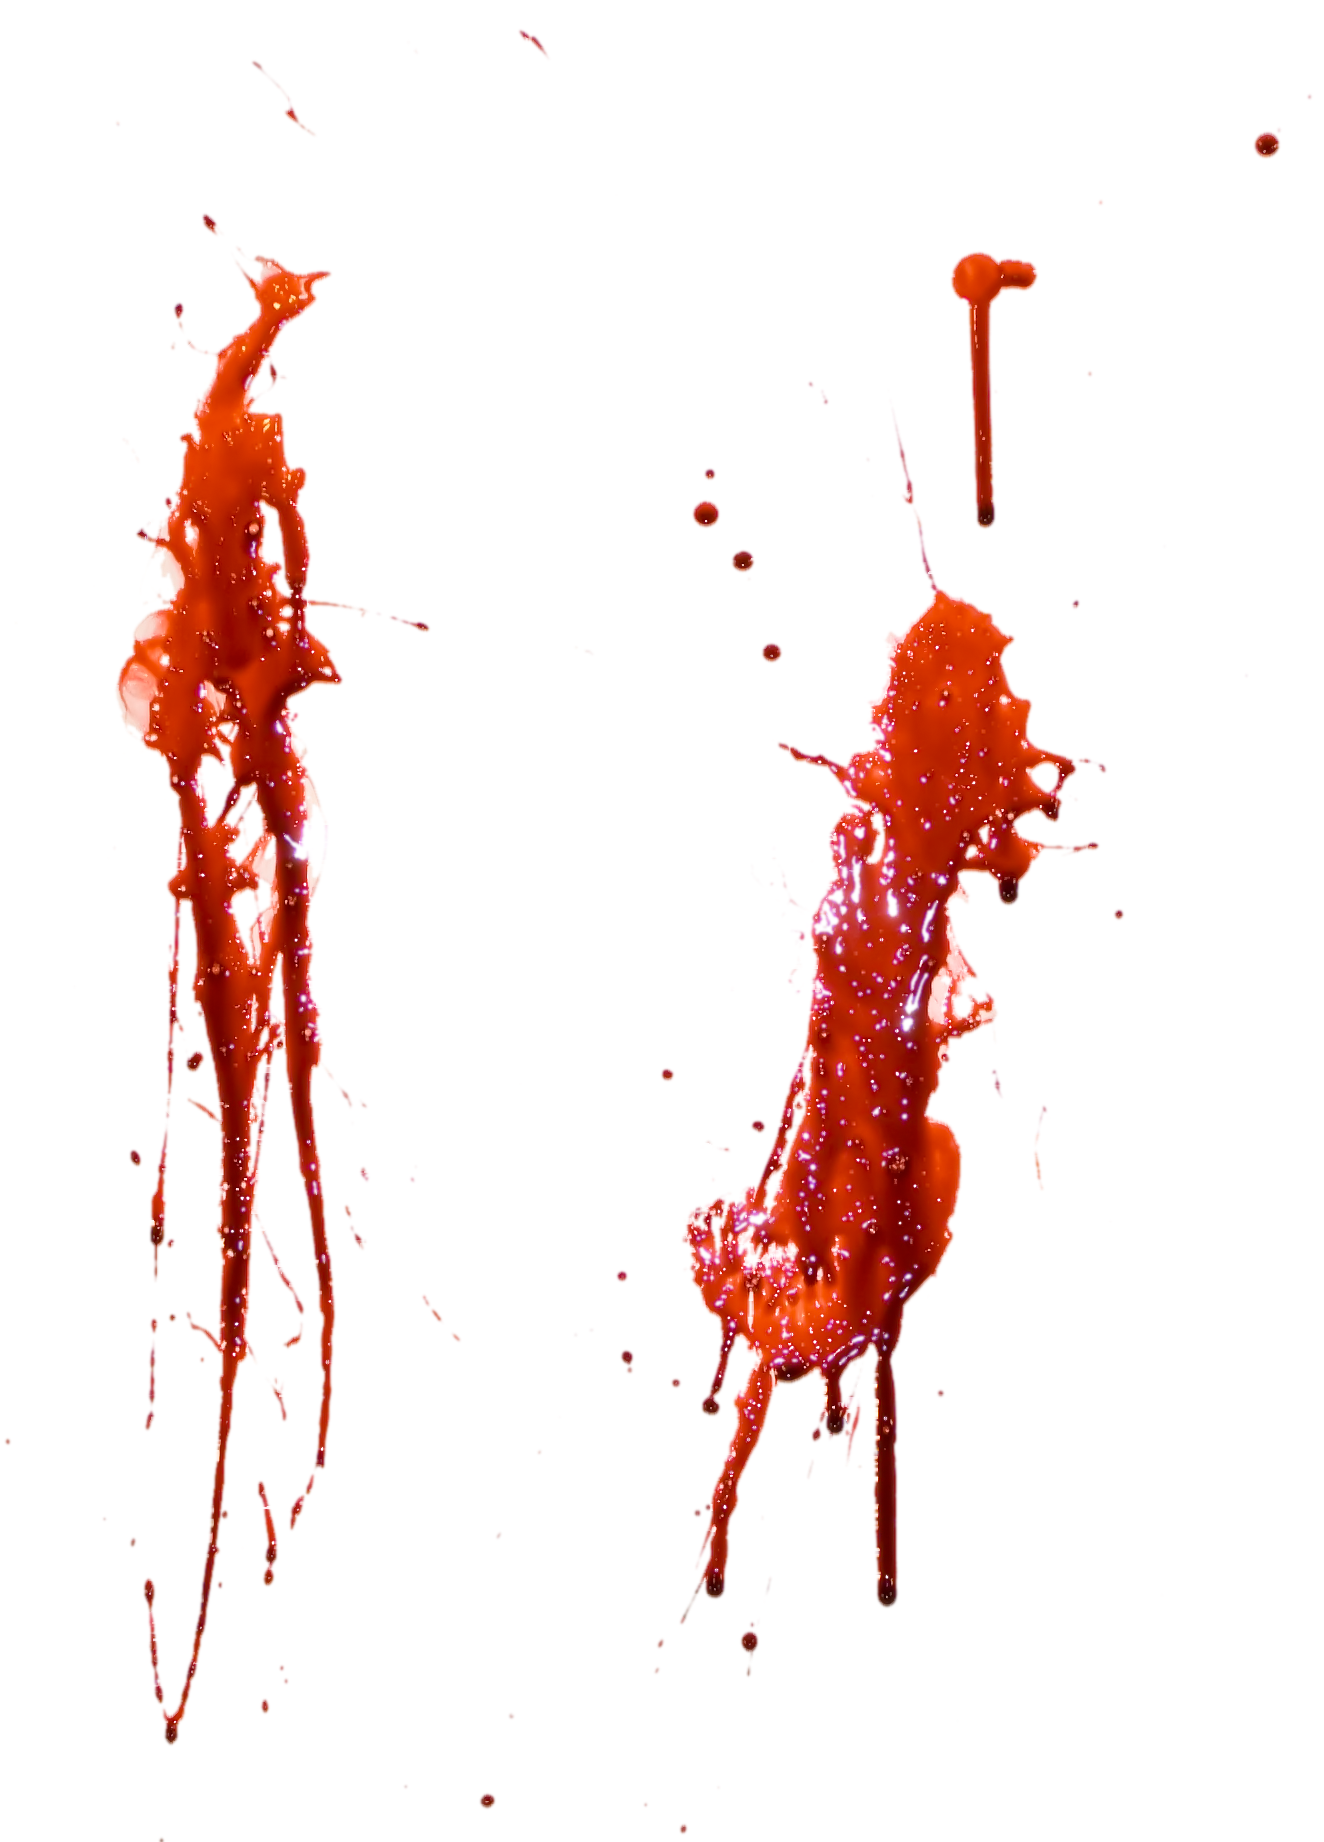 Paint puddle png. Blood images free download